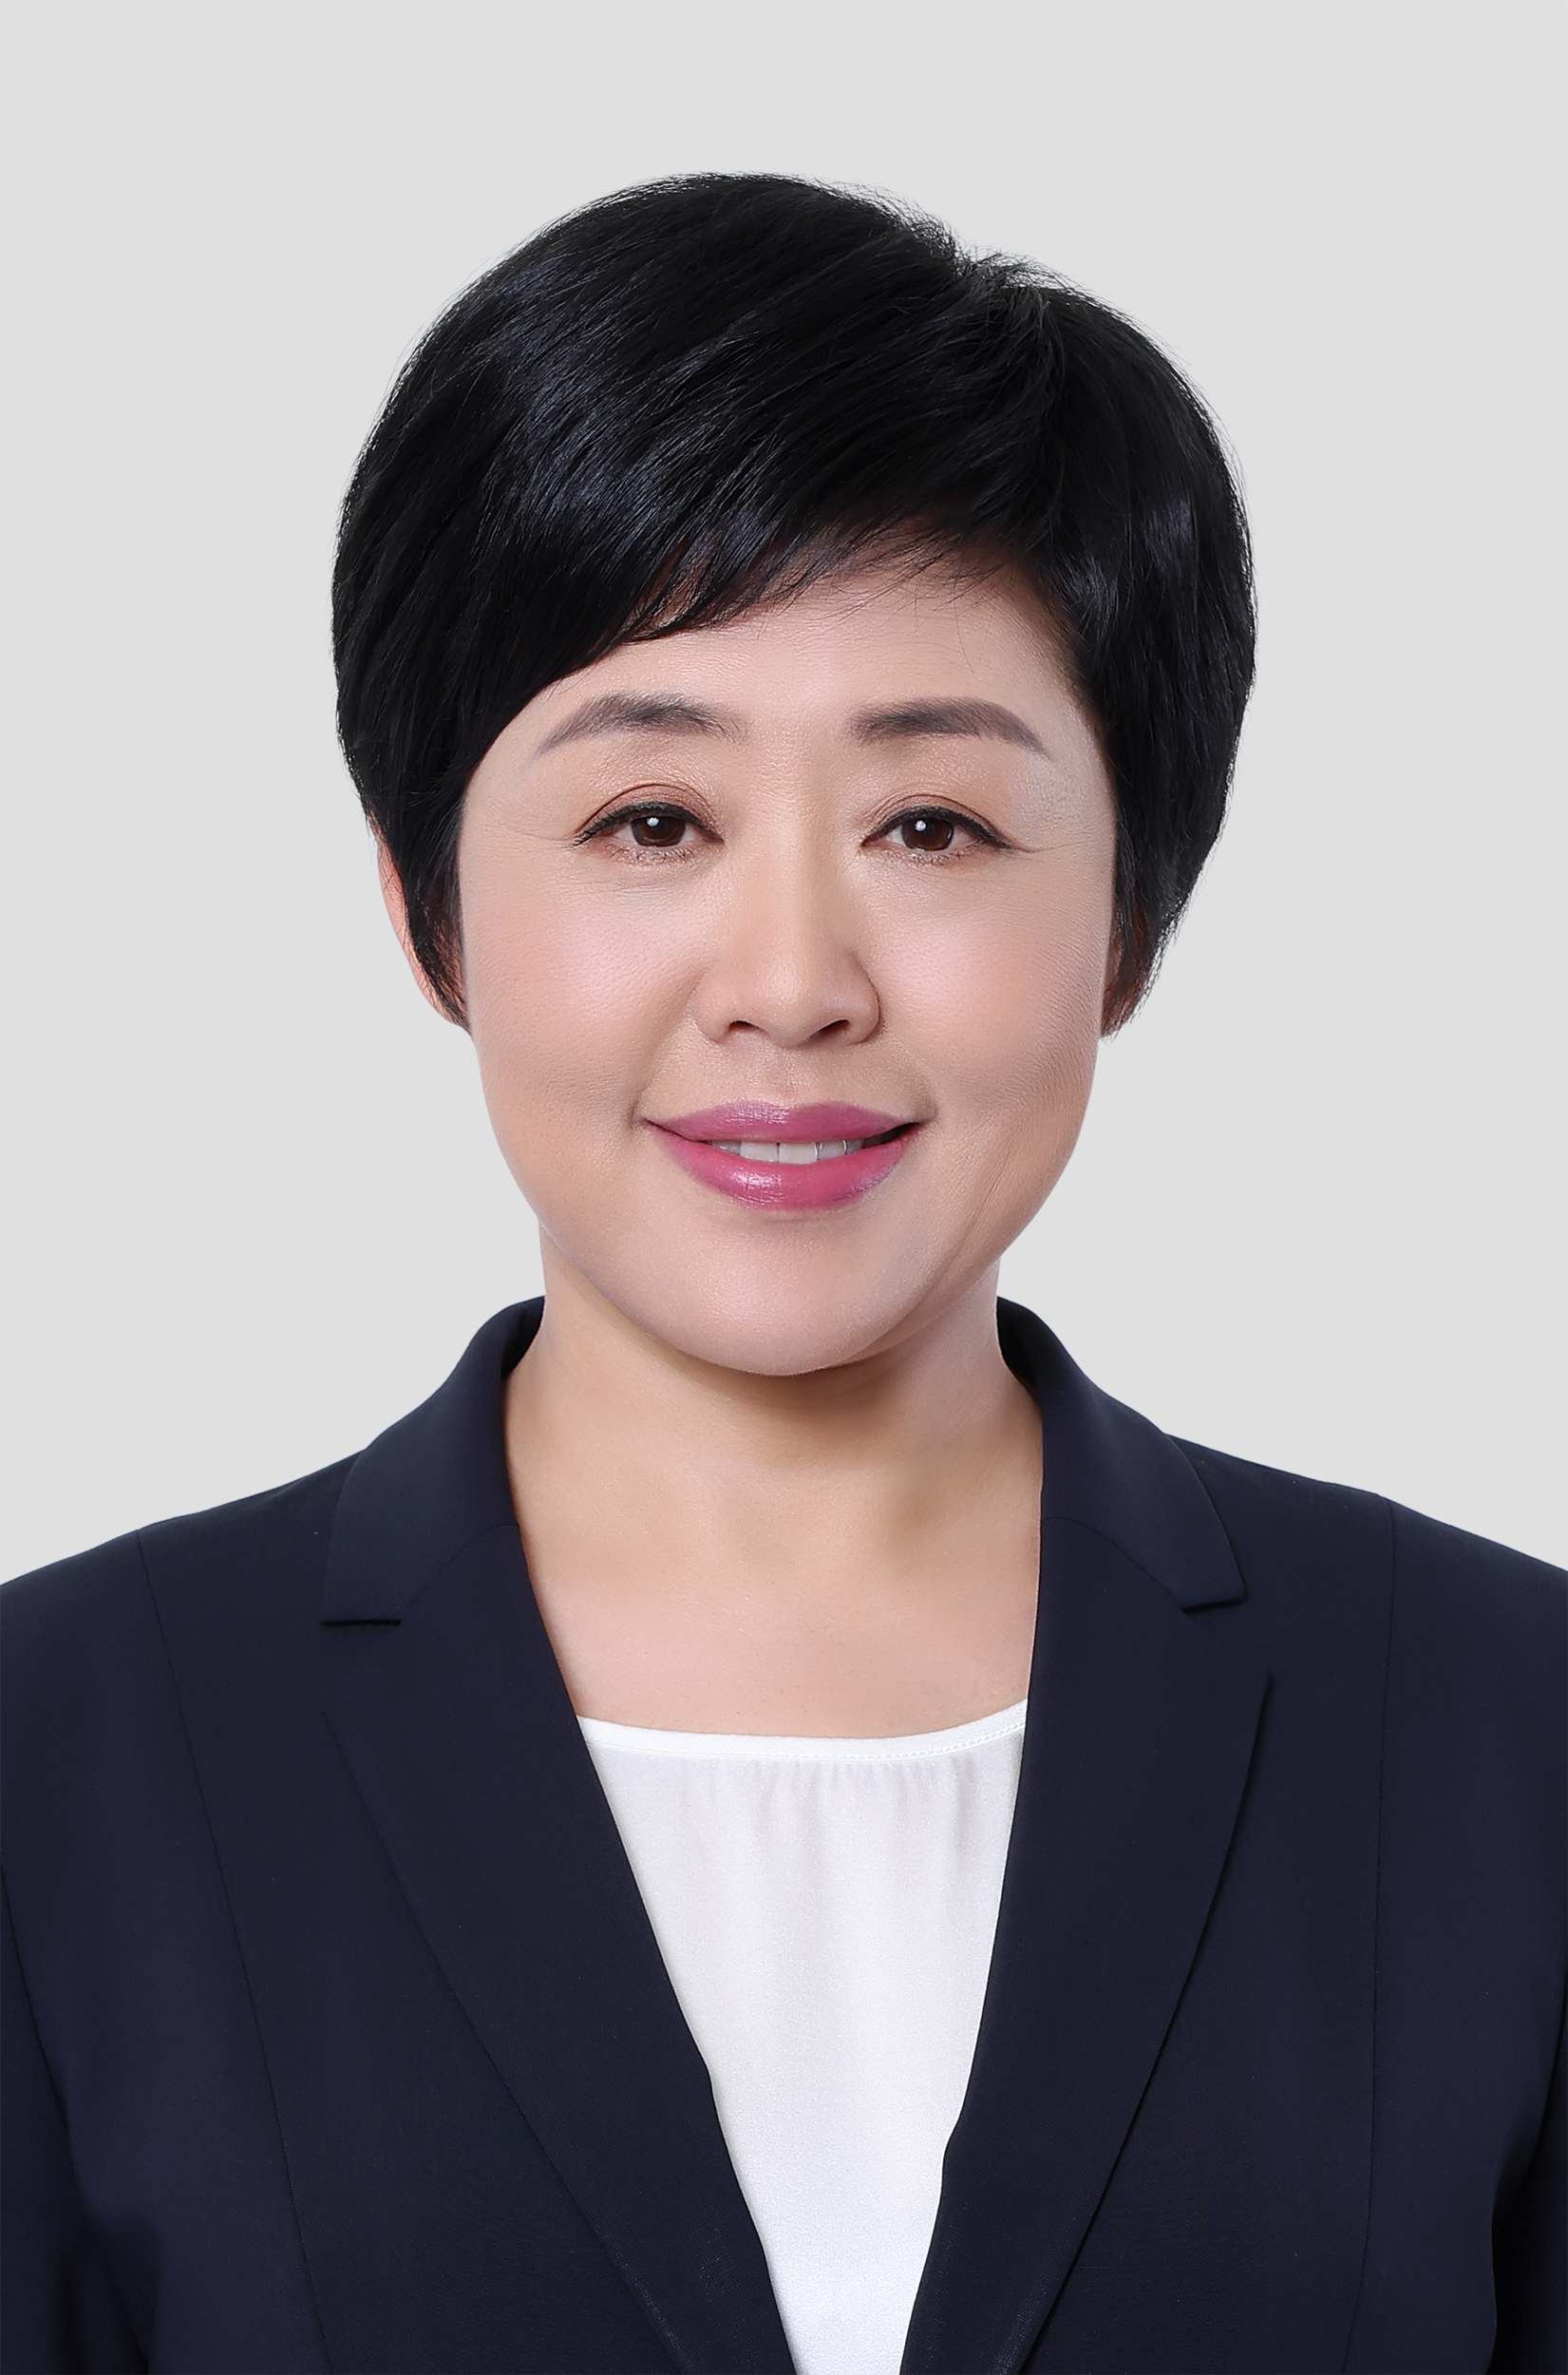 Merck appoints Head of China and International for healthcare business